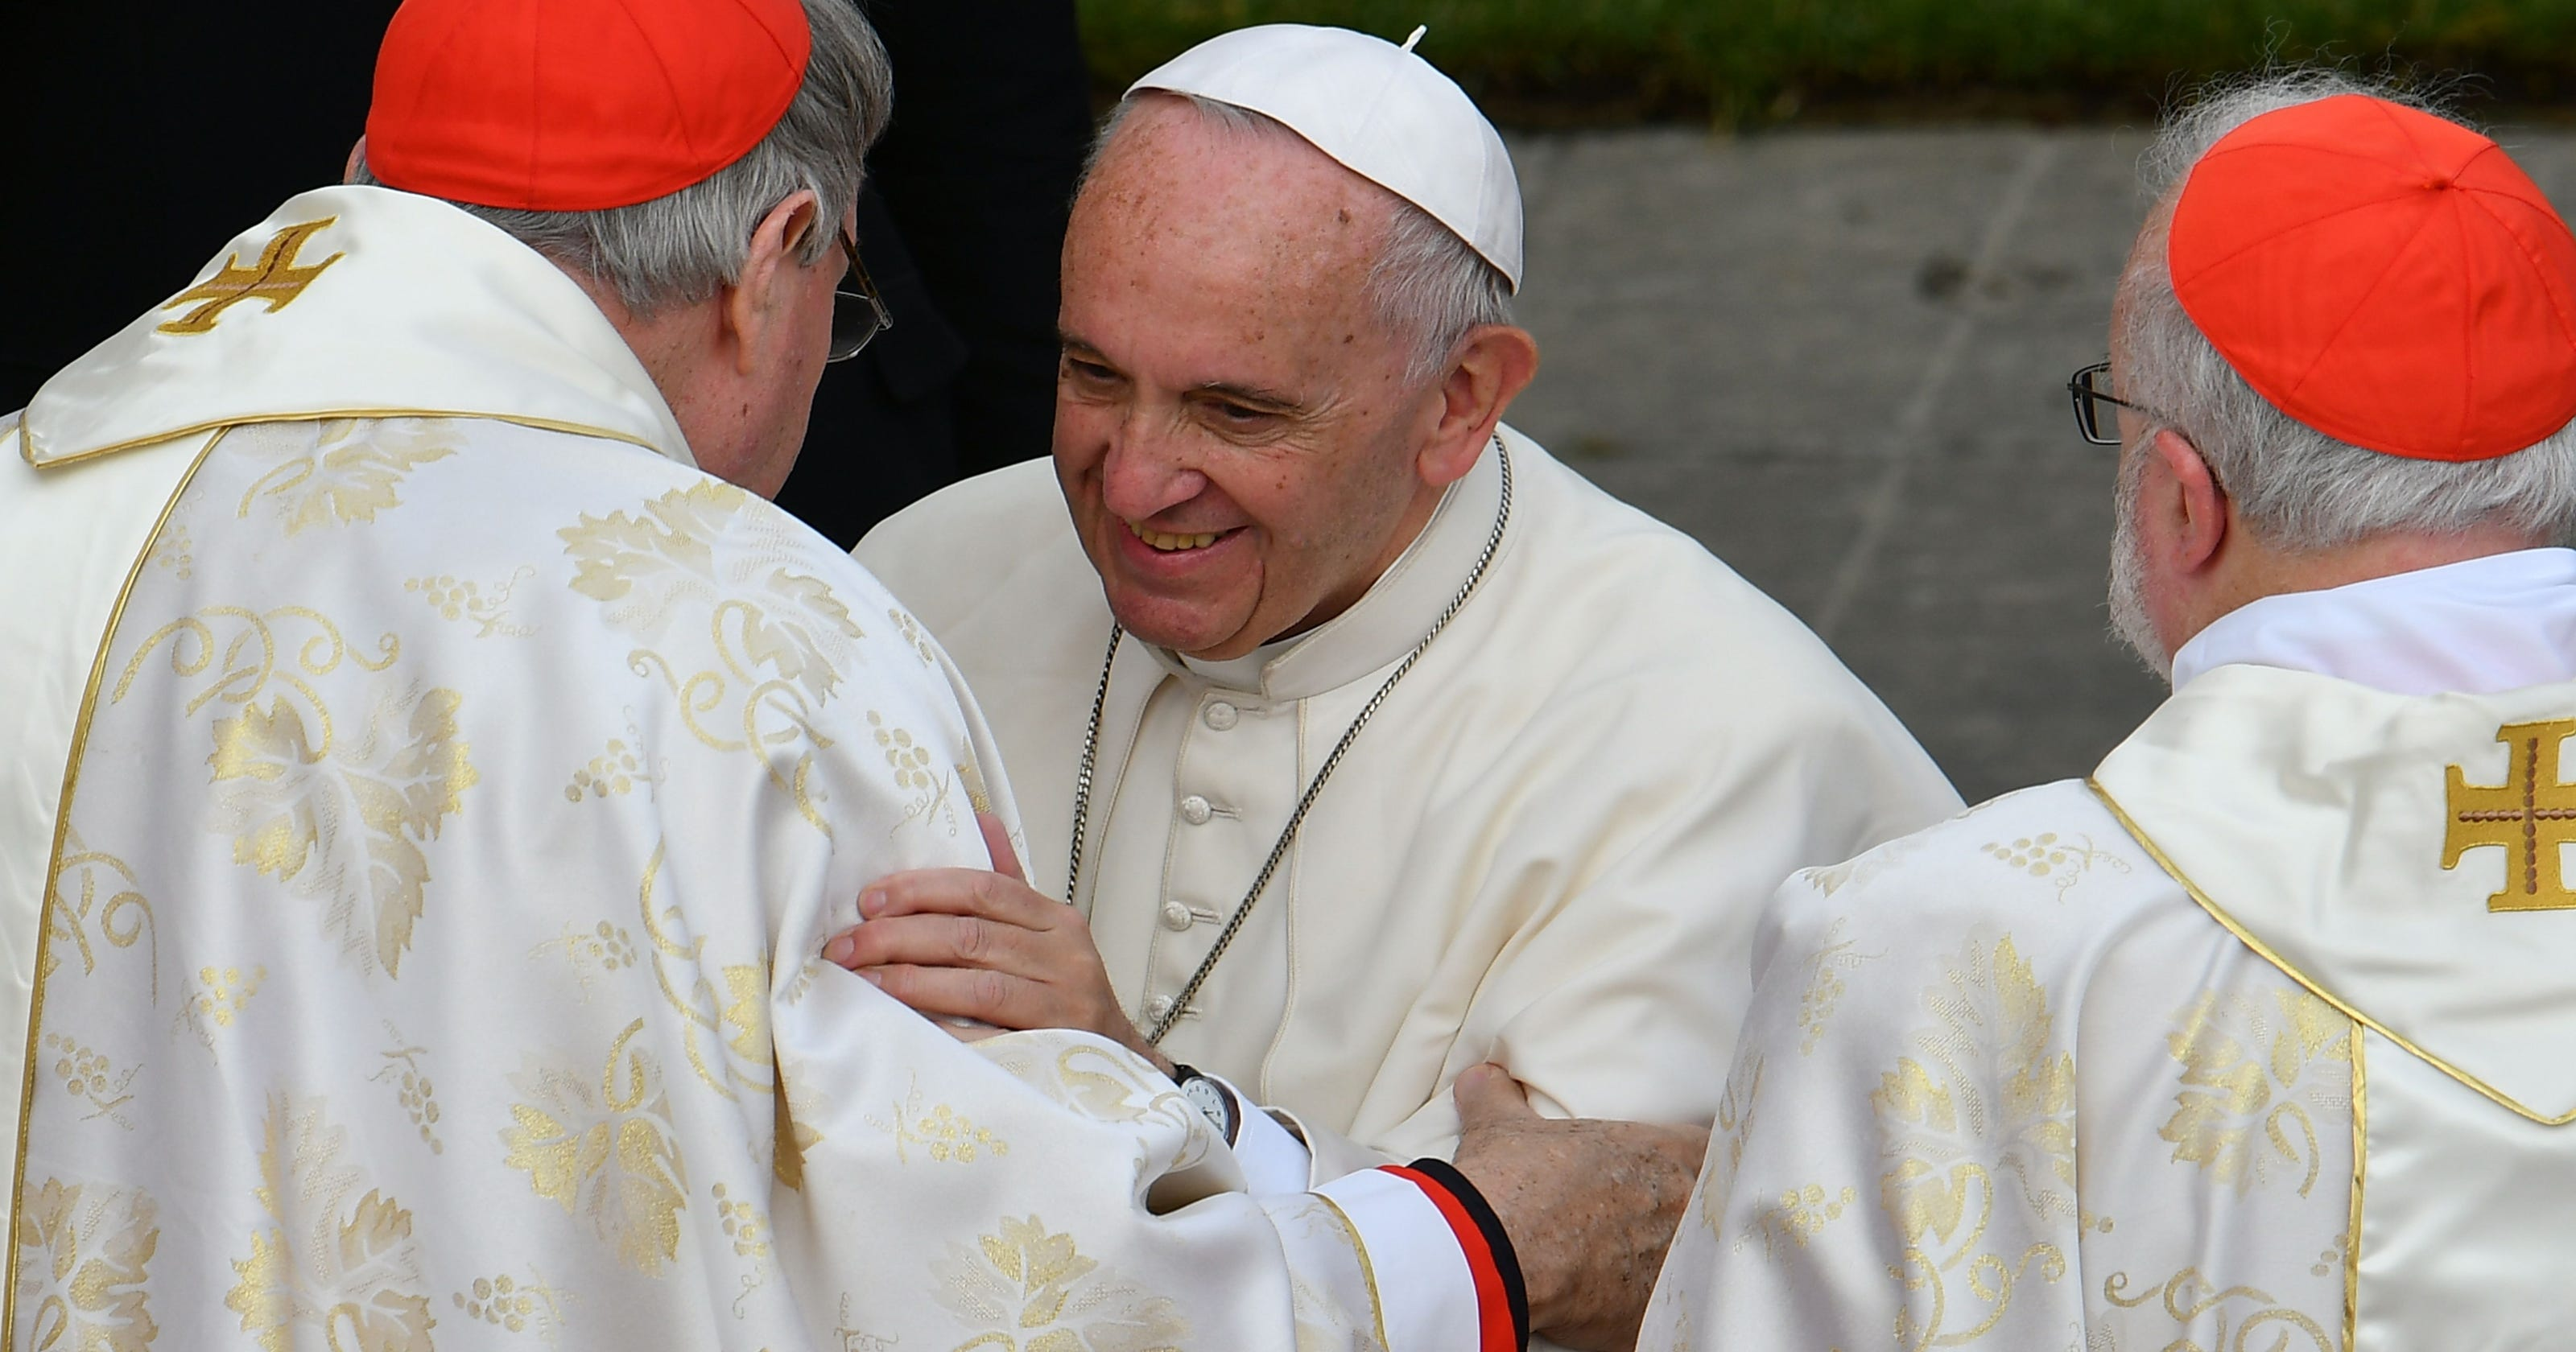 Cardinals Sex Abuse Charges Raise Questions About Popes Record